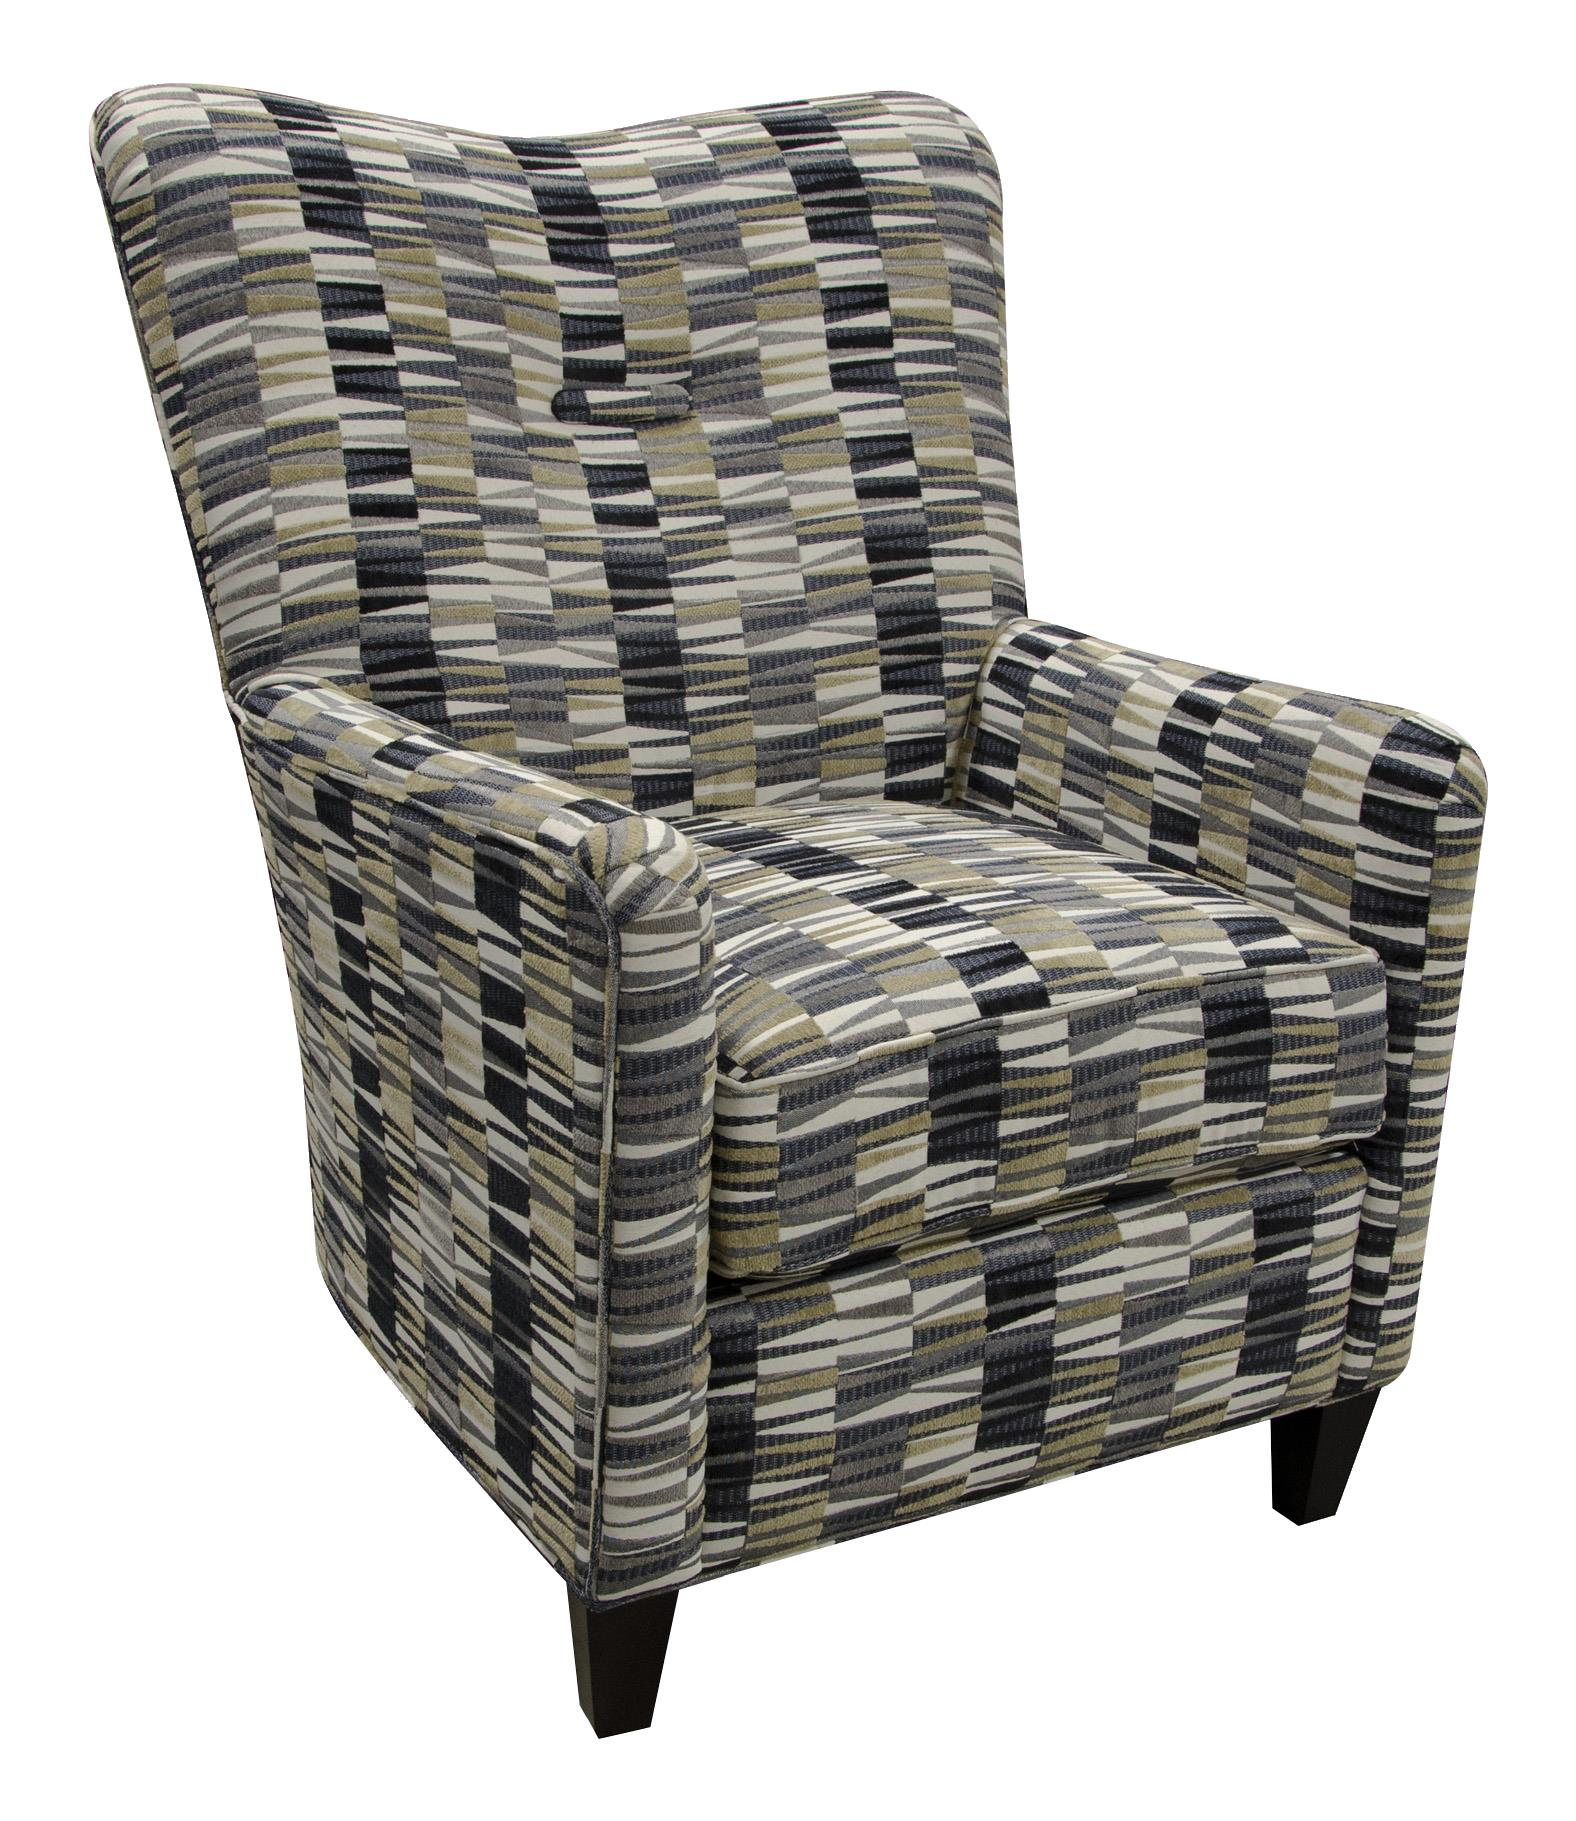 England Daughtry Arm Chair - Item Number: 1U04-7274